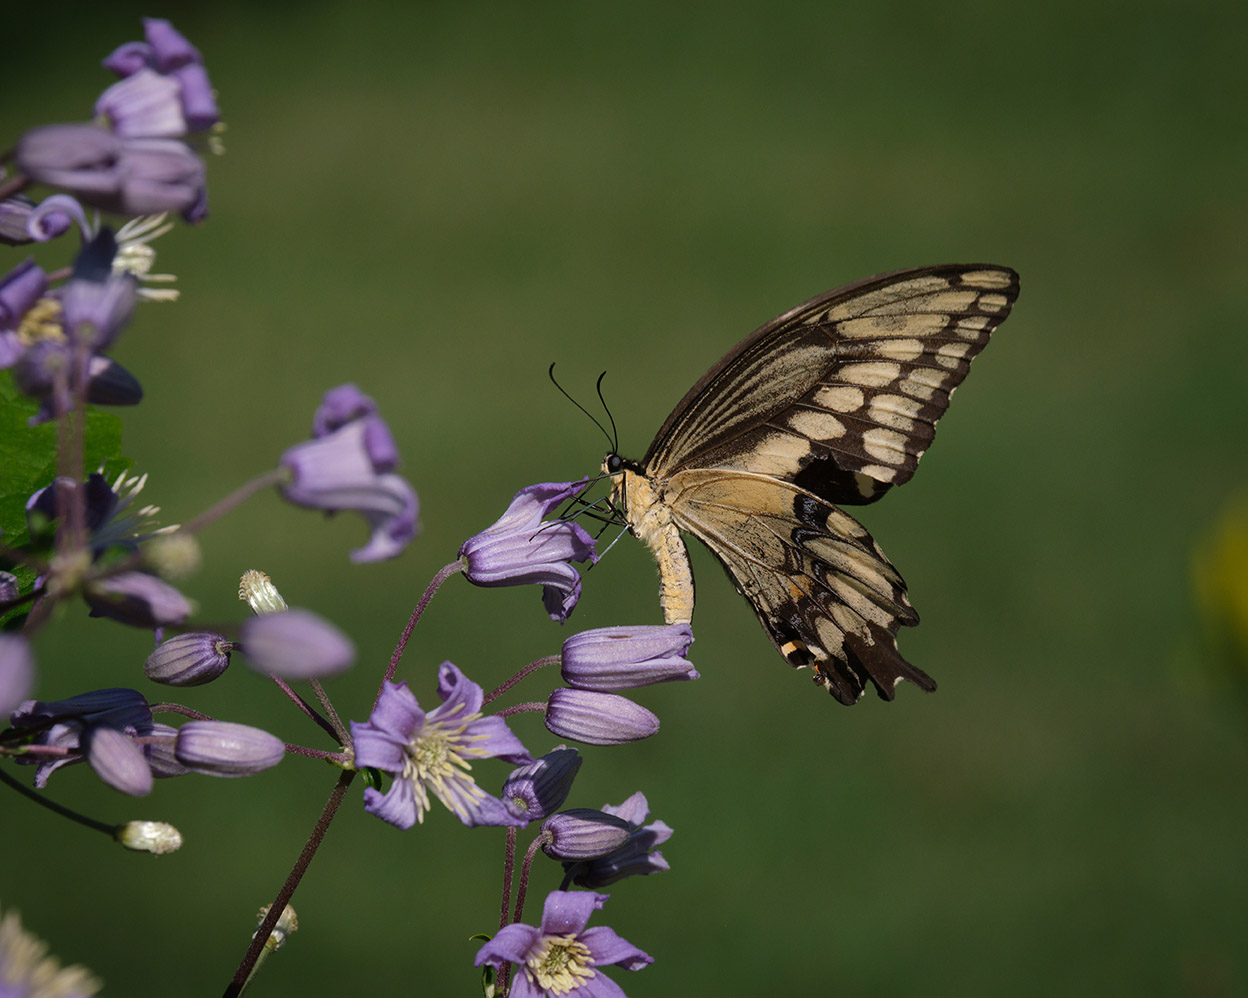 Giant swallowtail on clematis 8-19-21 - lr